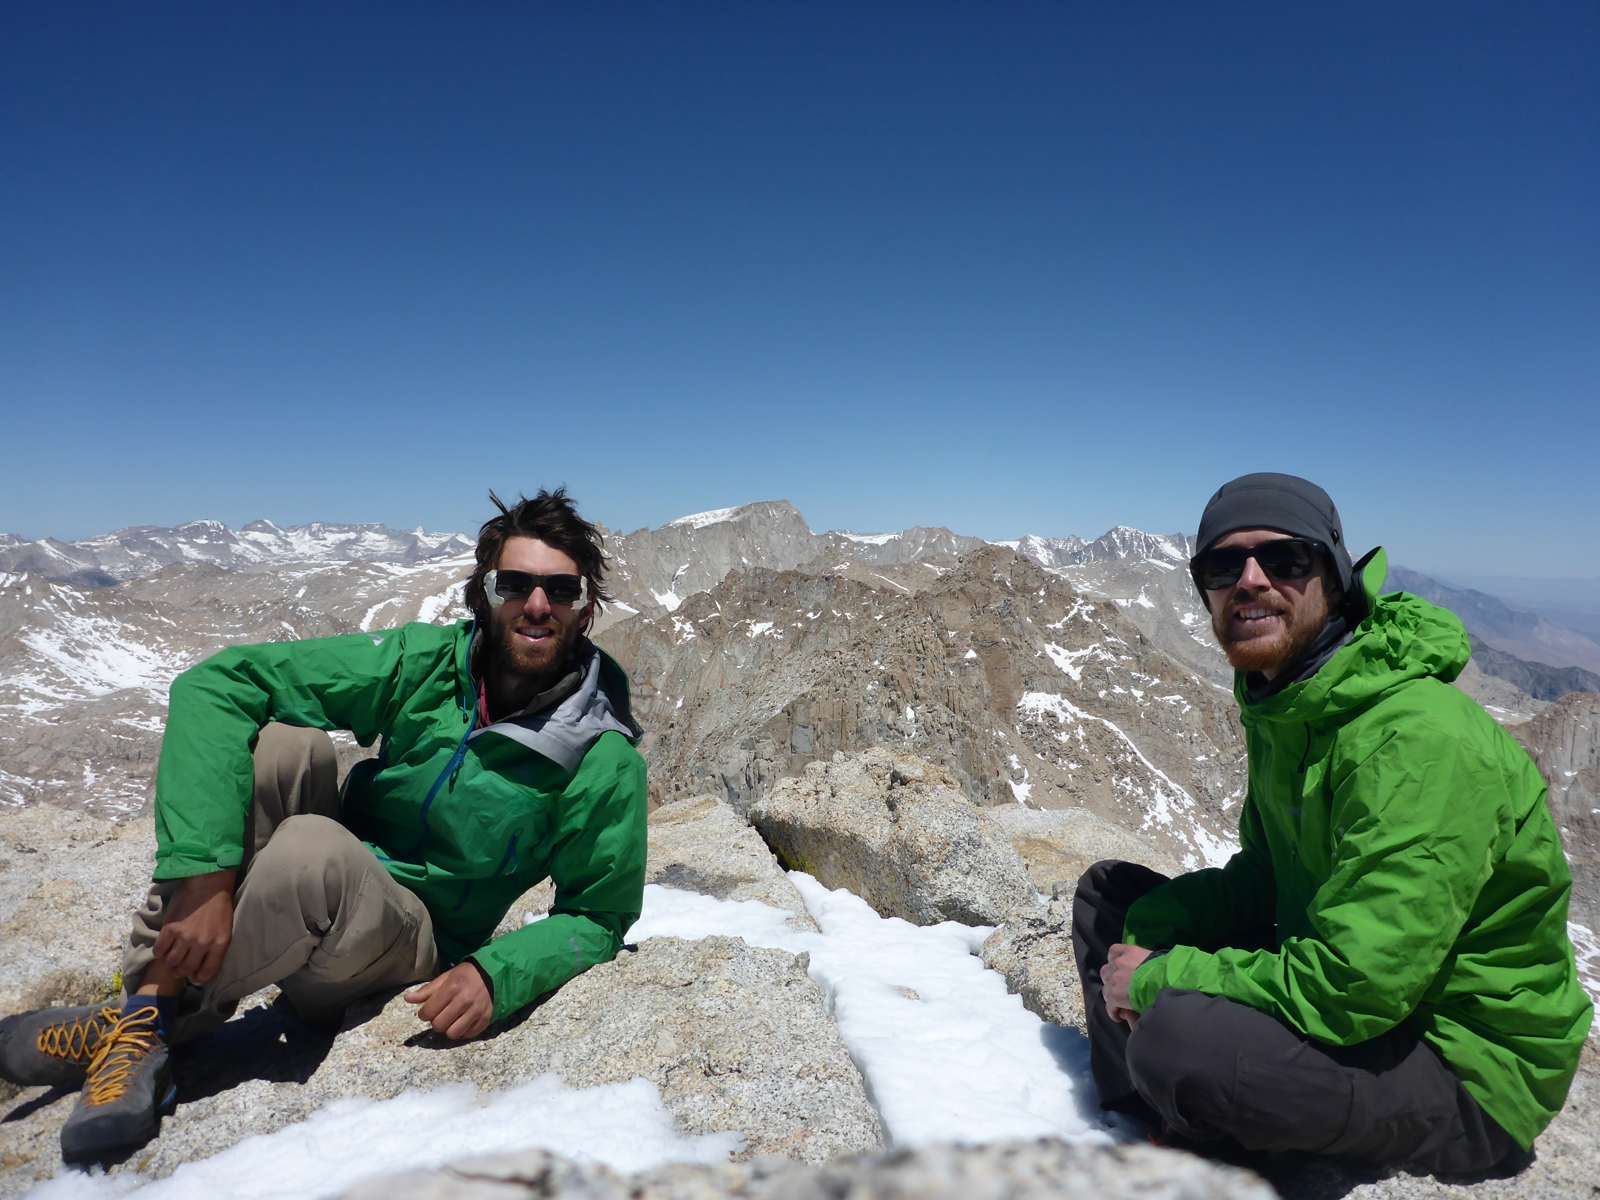 Michael (left) and Chris (right) on the summit of Mt Langley (4 278 m).